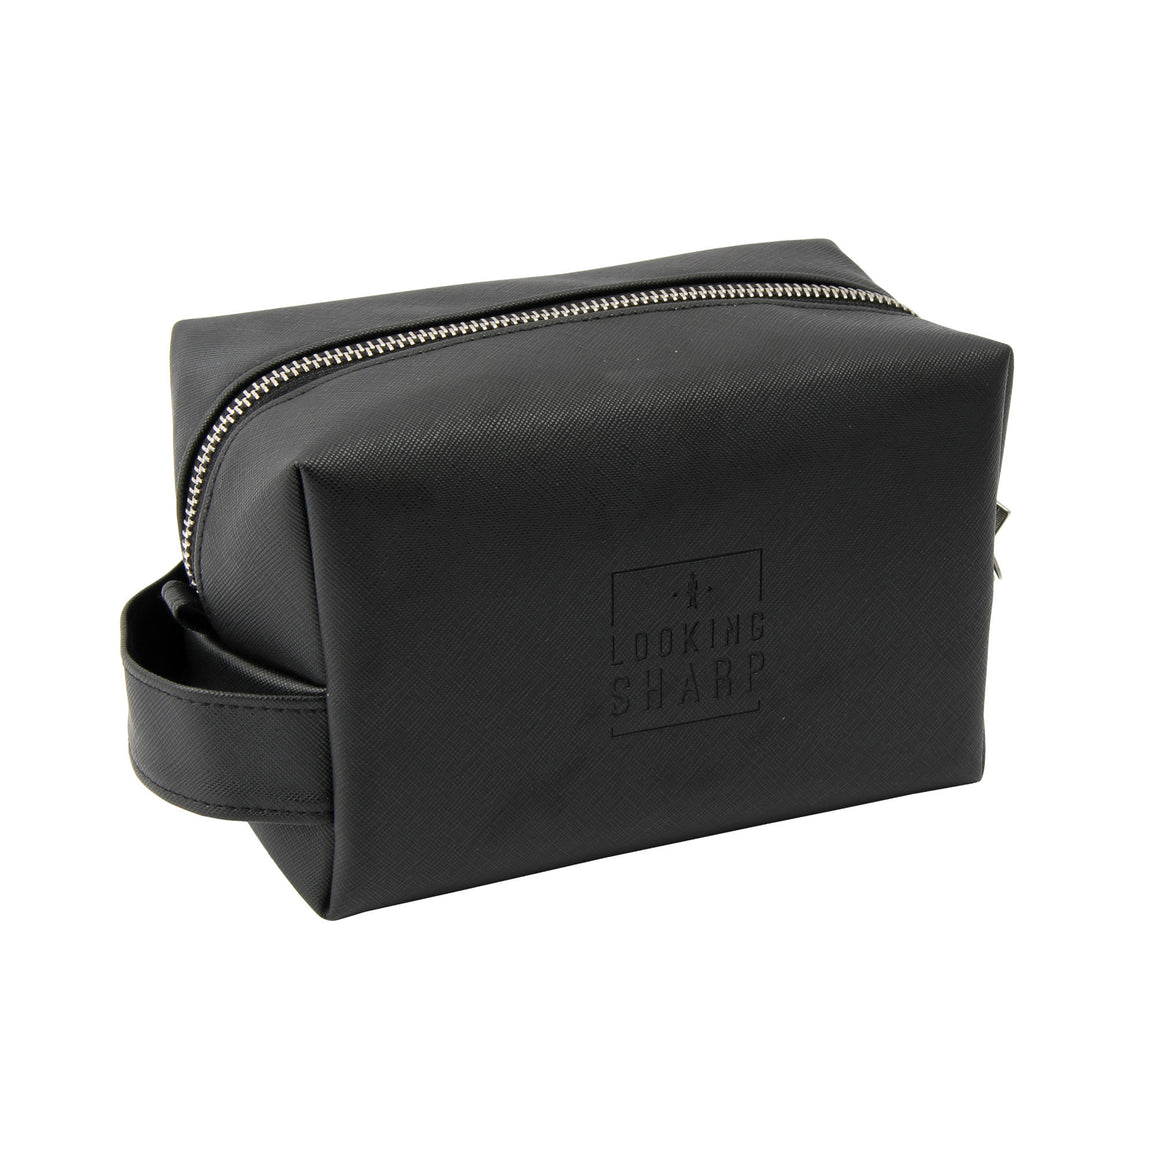 Dapper Chap 'Looking Sharp' Mens Black Wash Bag - The Love Trees